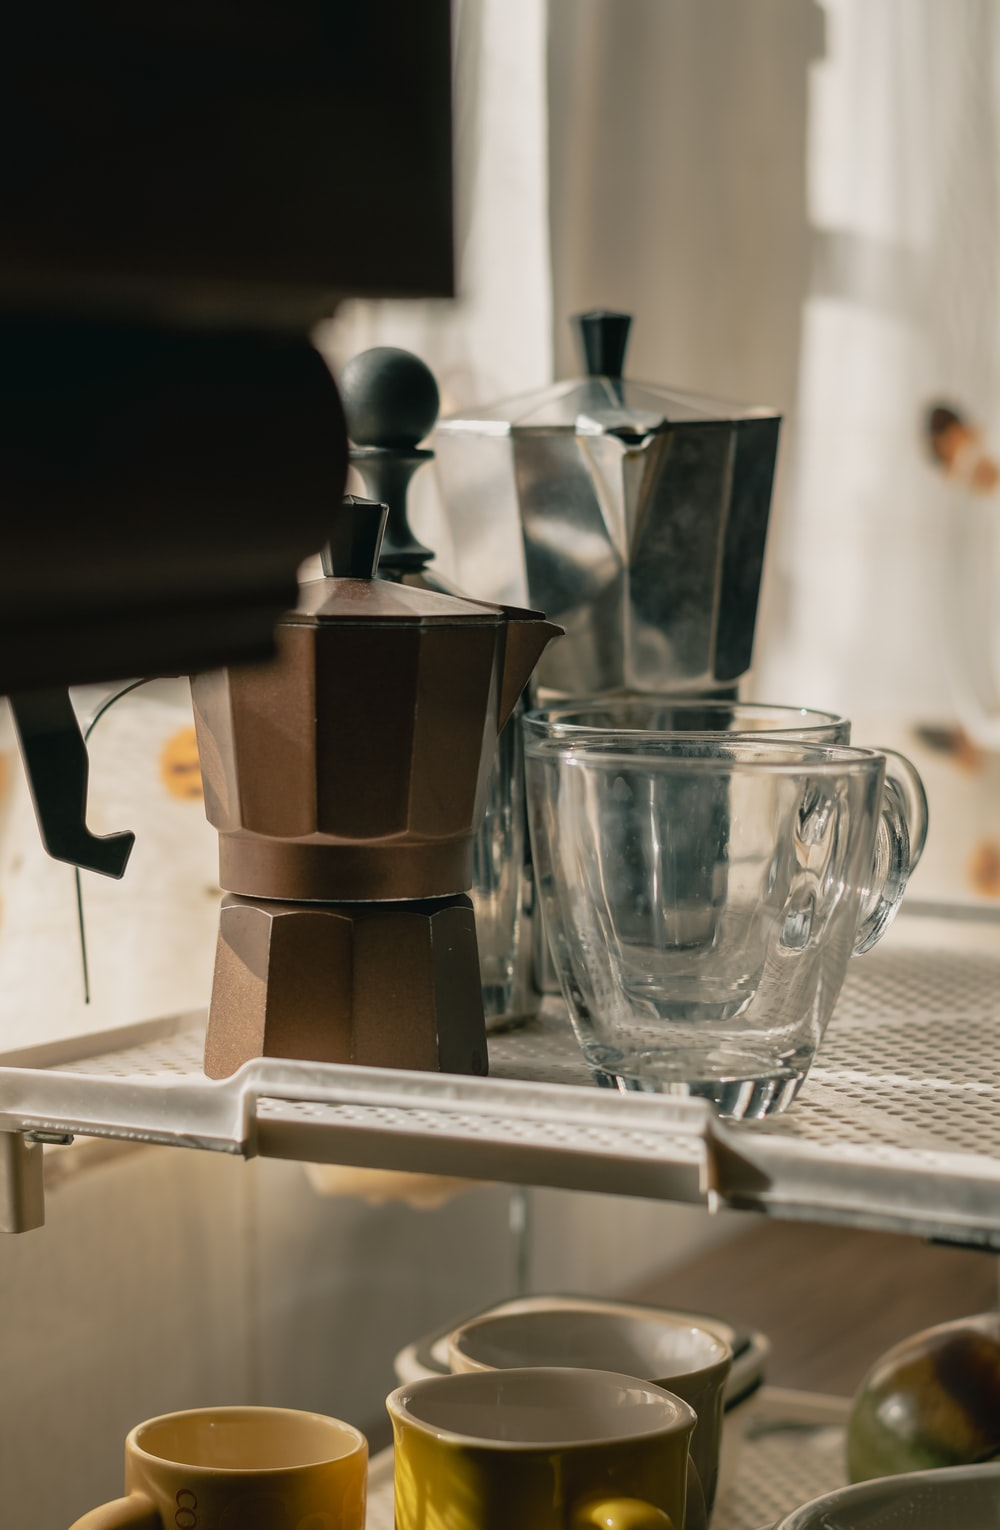 clear drinking glass on stainless steel coffee maker